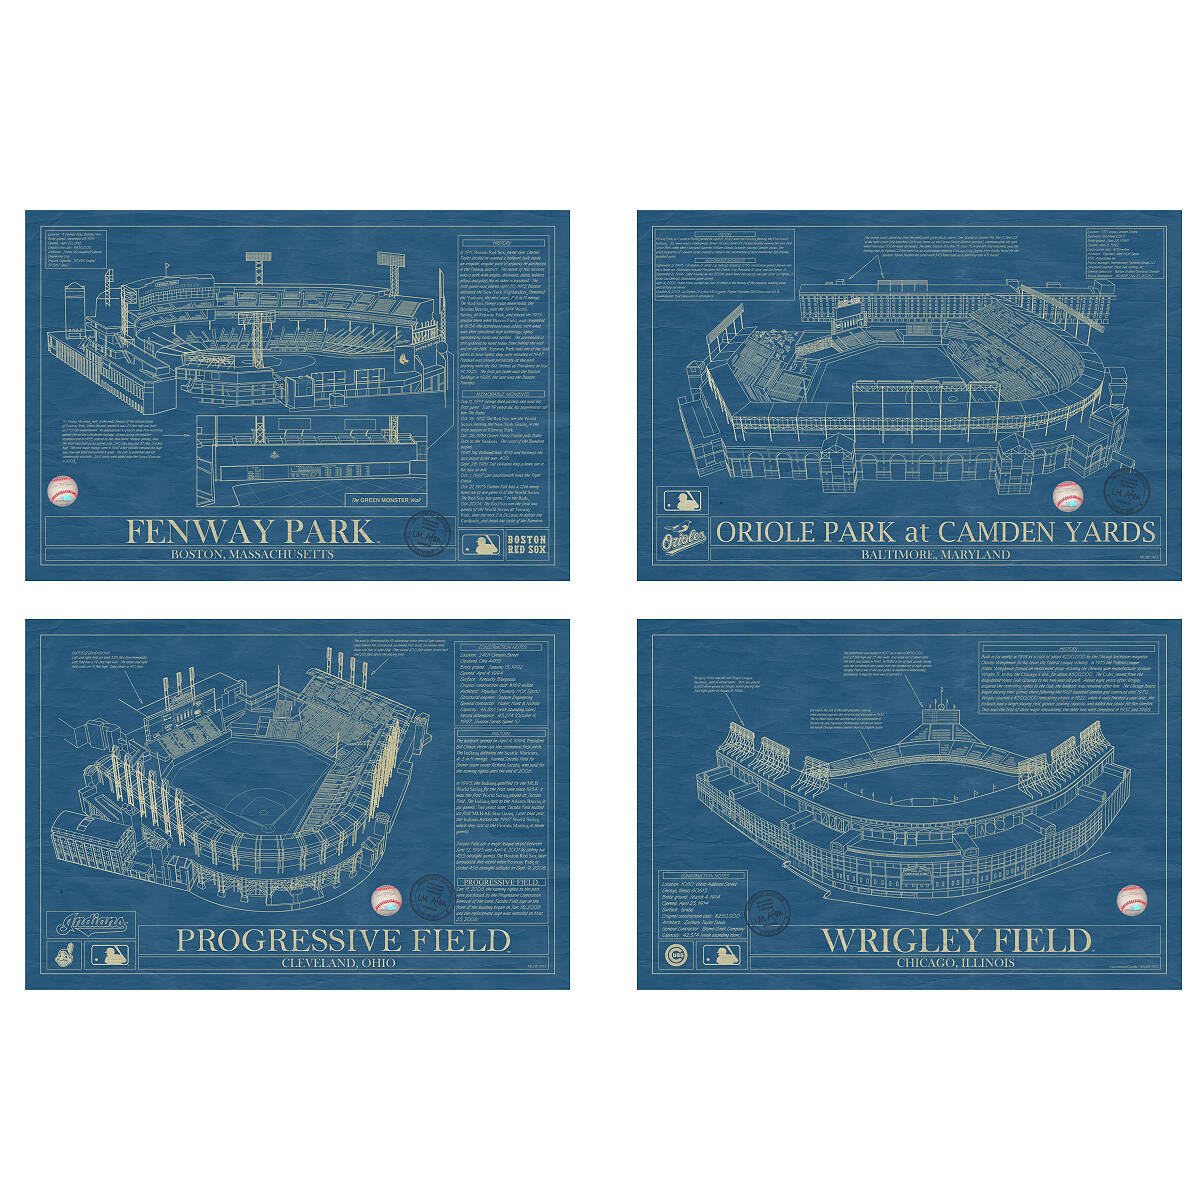 Baseball stadium blueprints baseball stadium art fenway park baseball stadium blueprints 4 thumbnail malvernweather Gallery